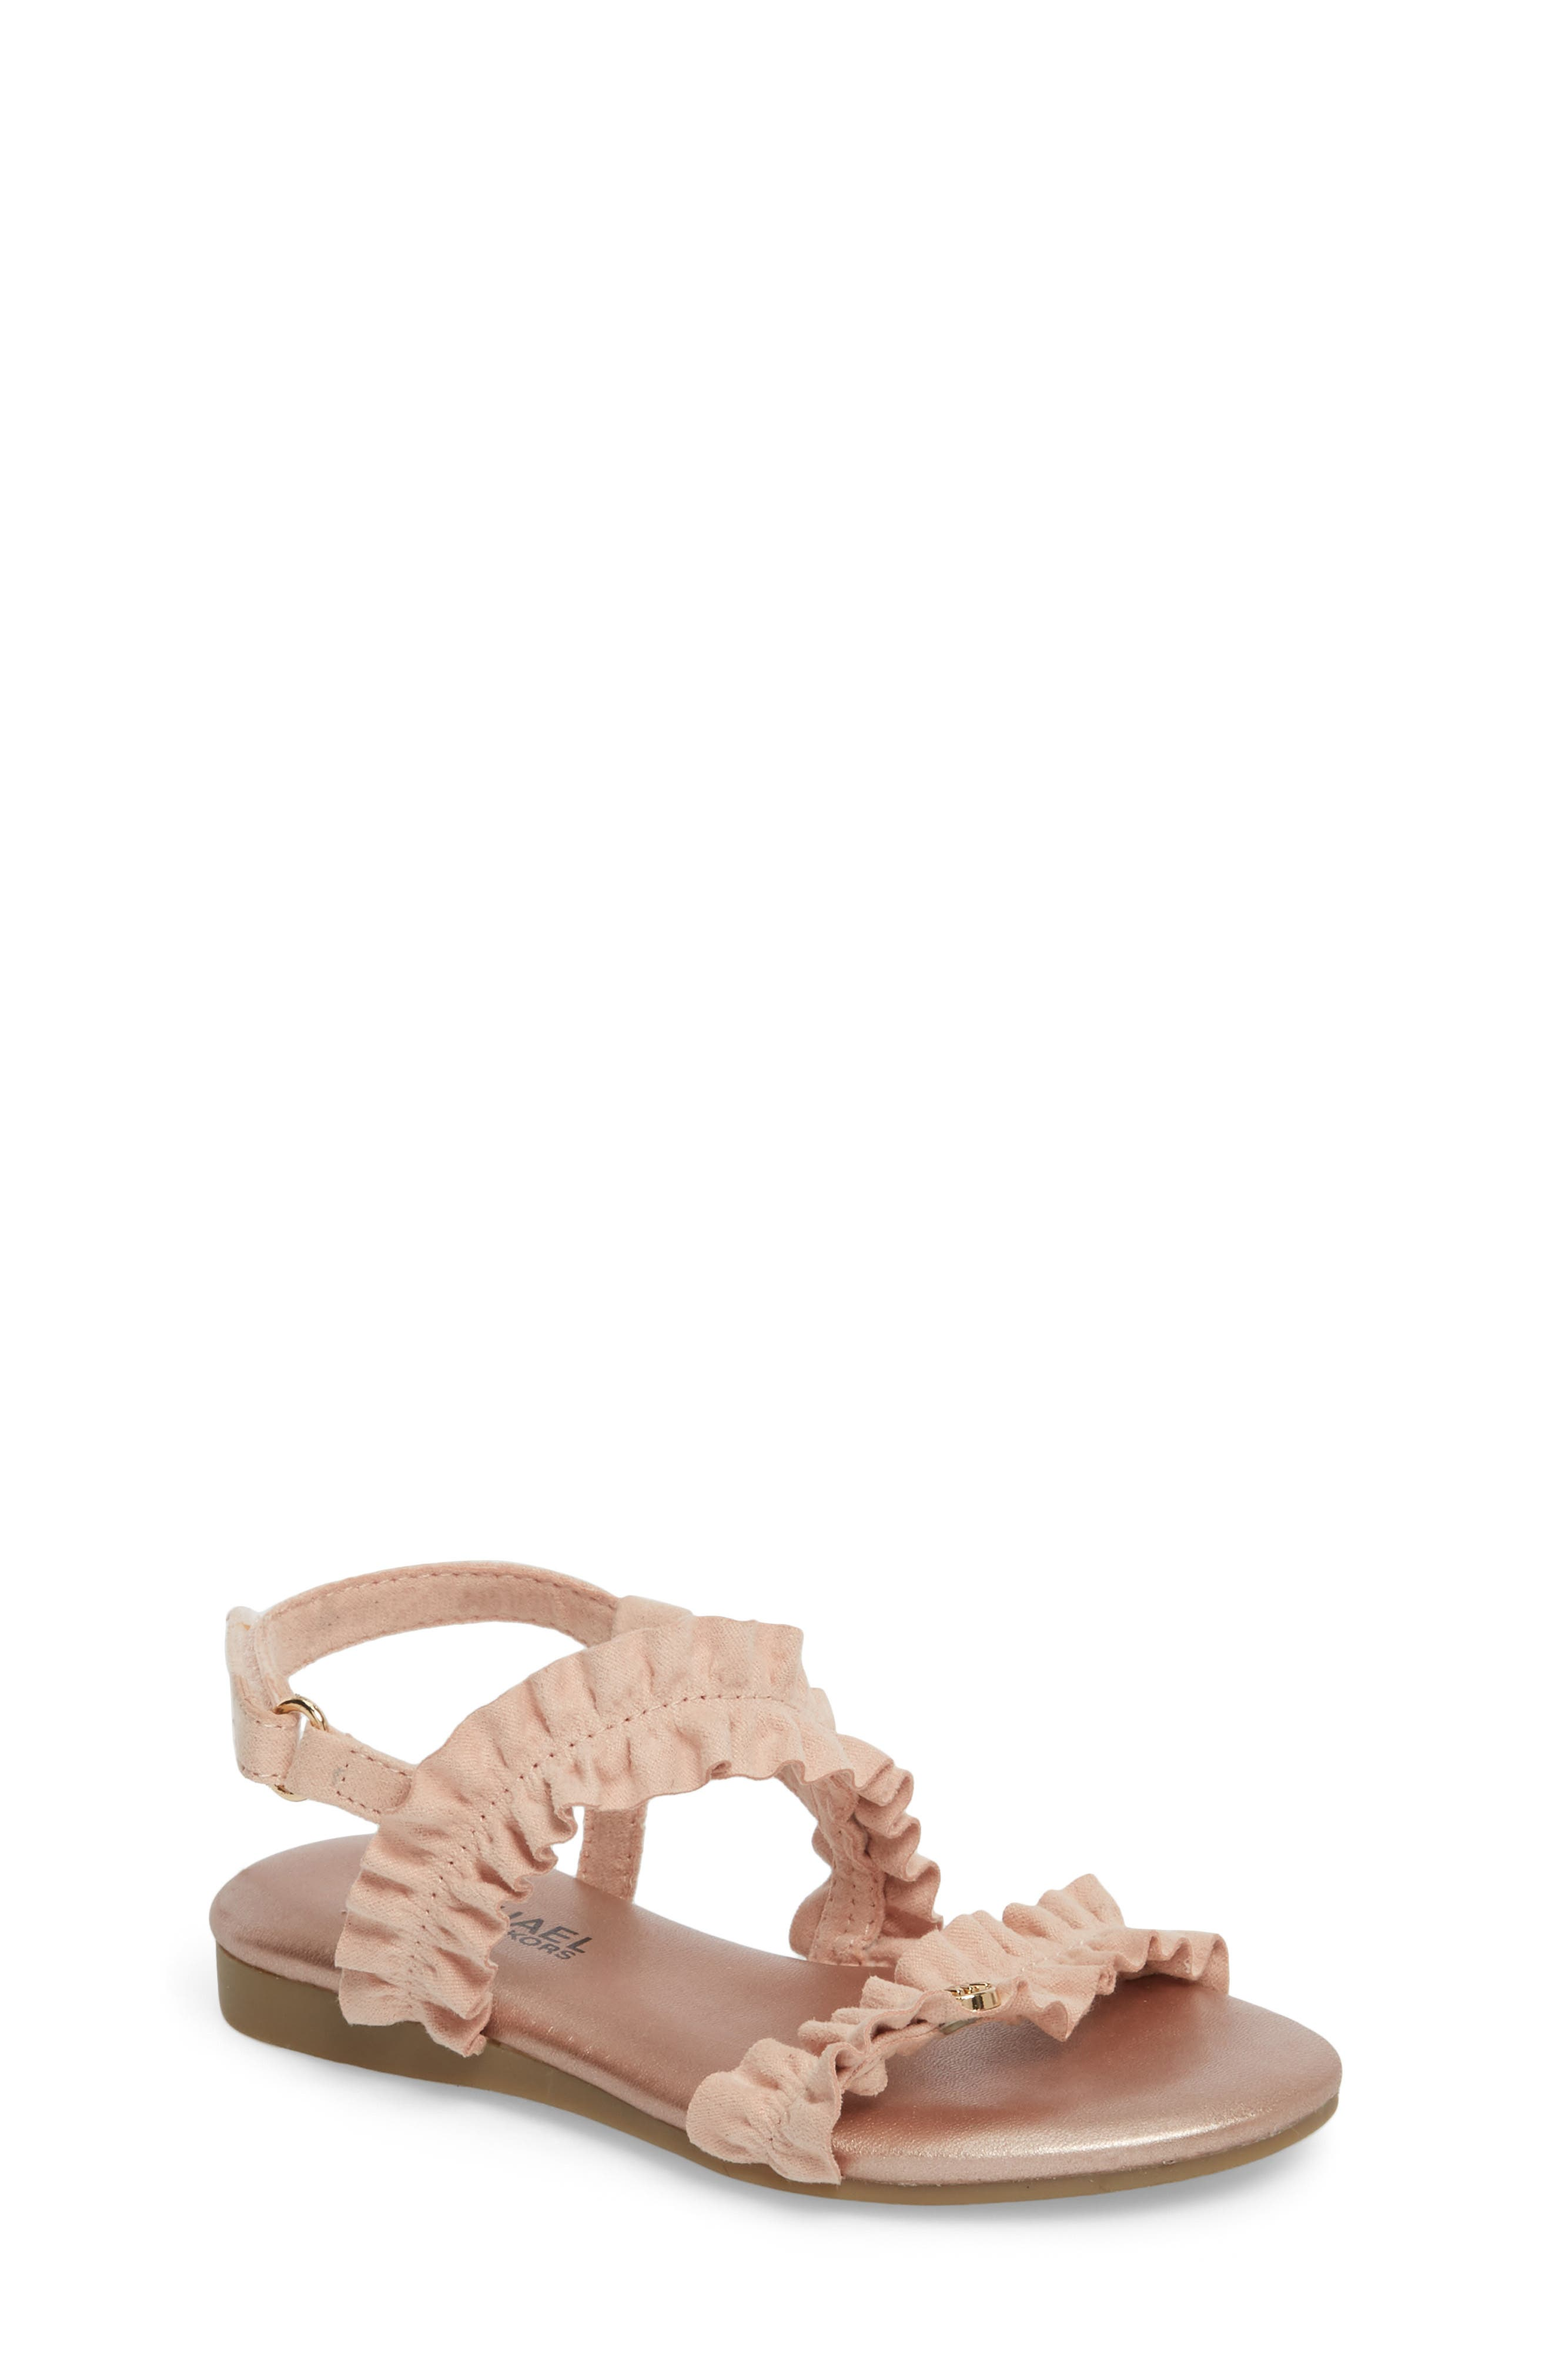 Demi Frillz Sandal,                         Main,                         color, 654